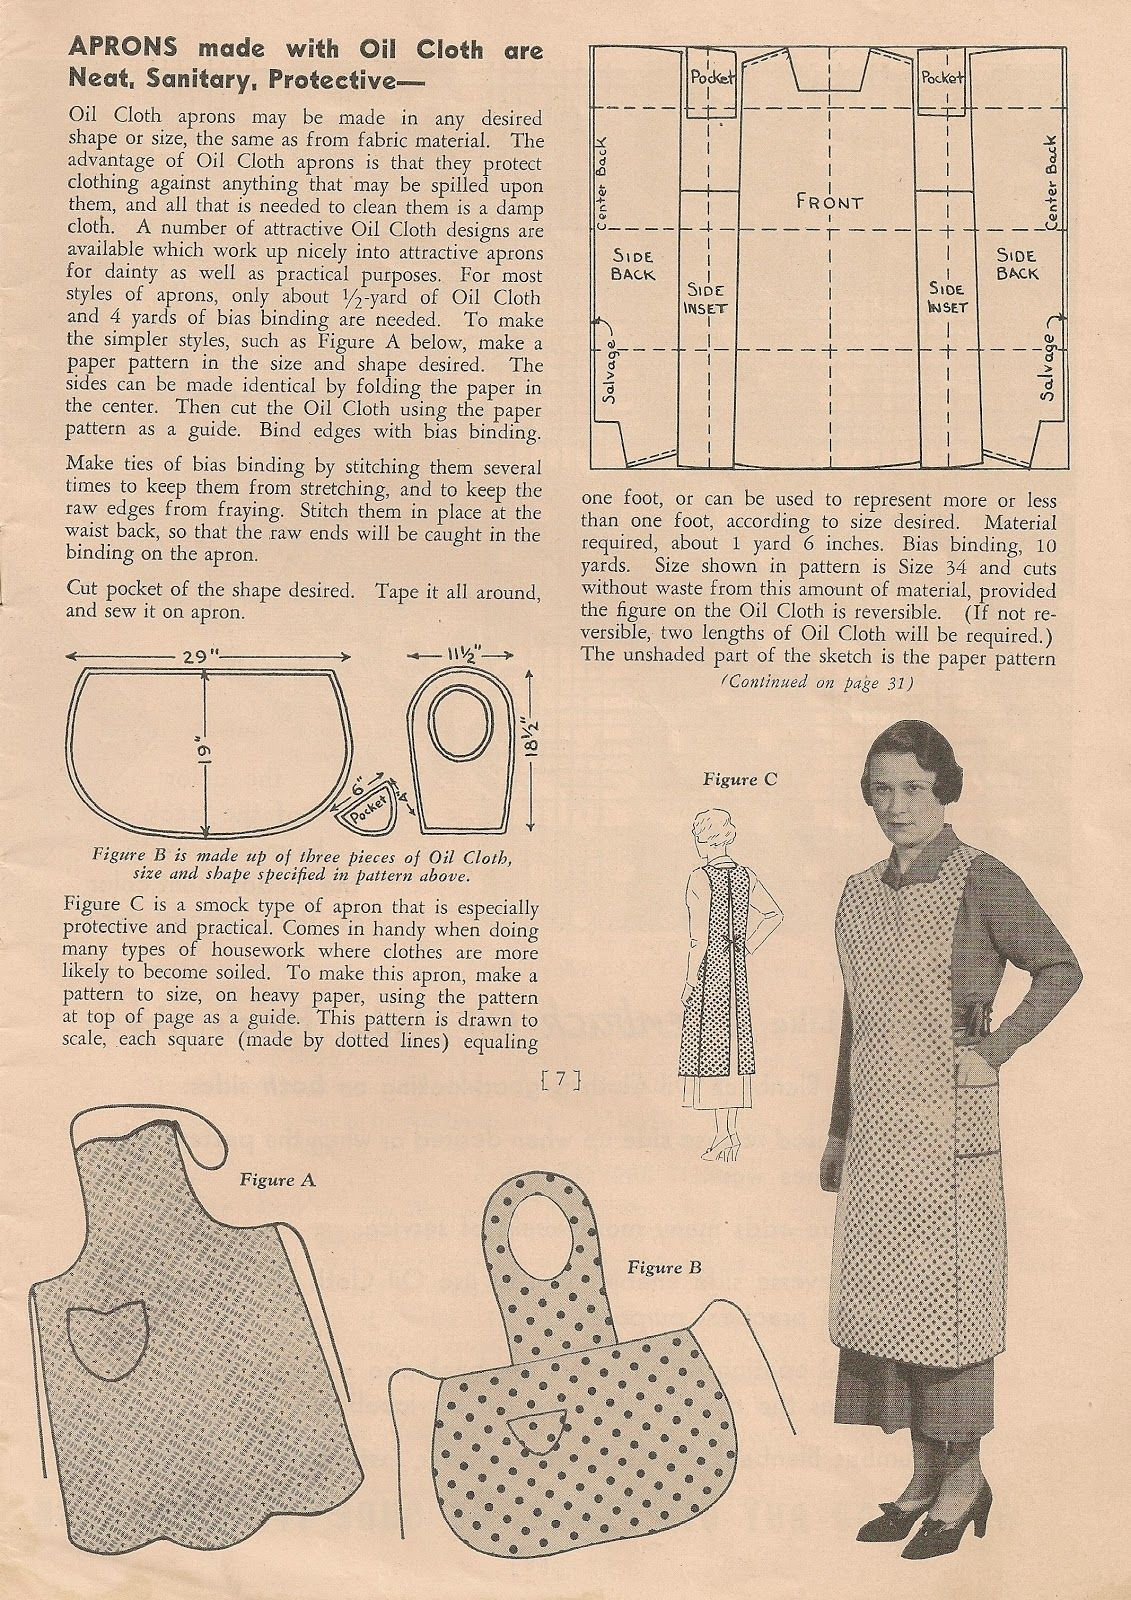 Free Vintage Apron Patterns Circa 1930s From Sentimental